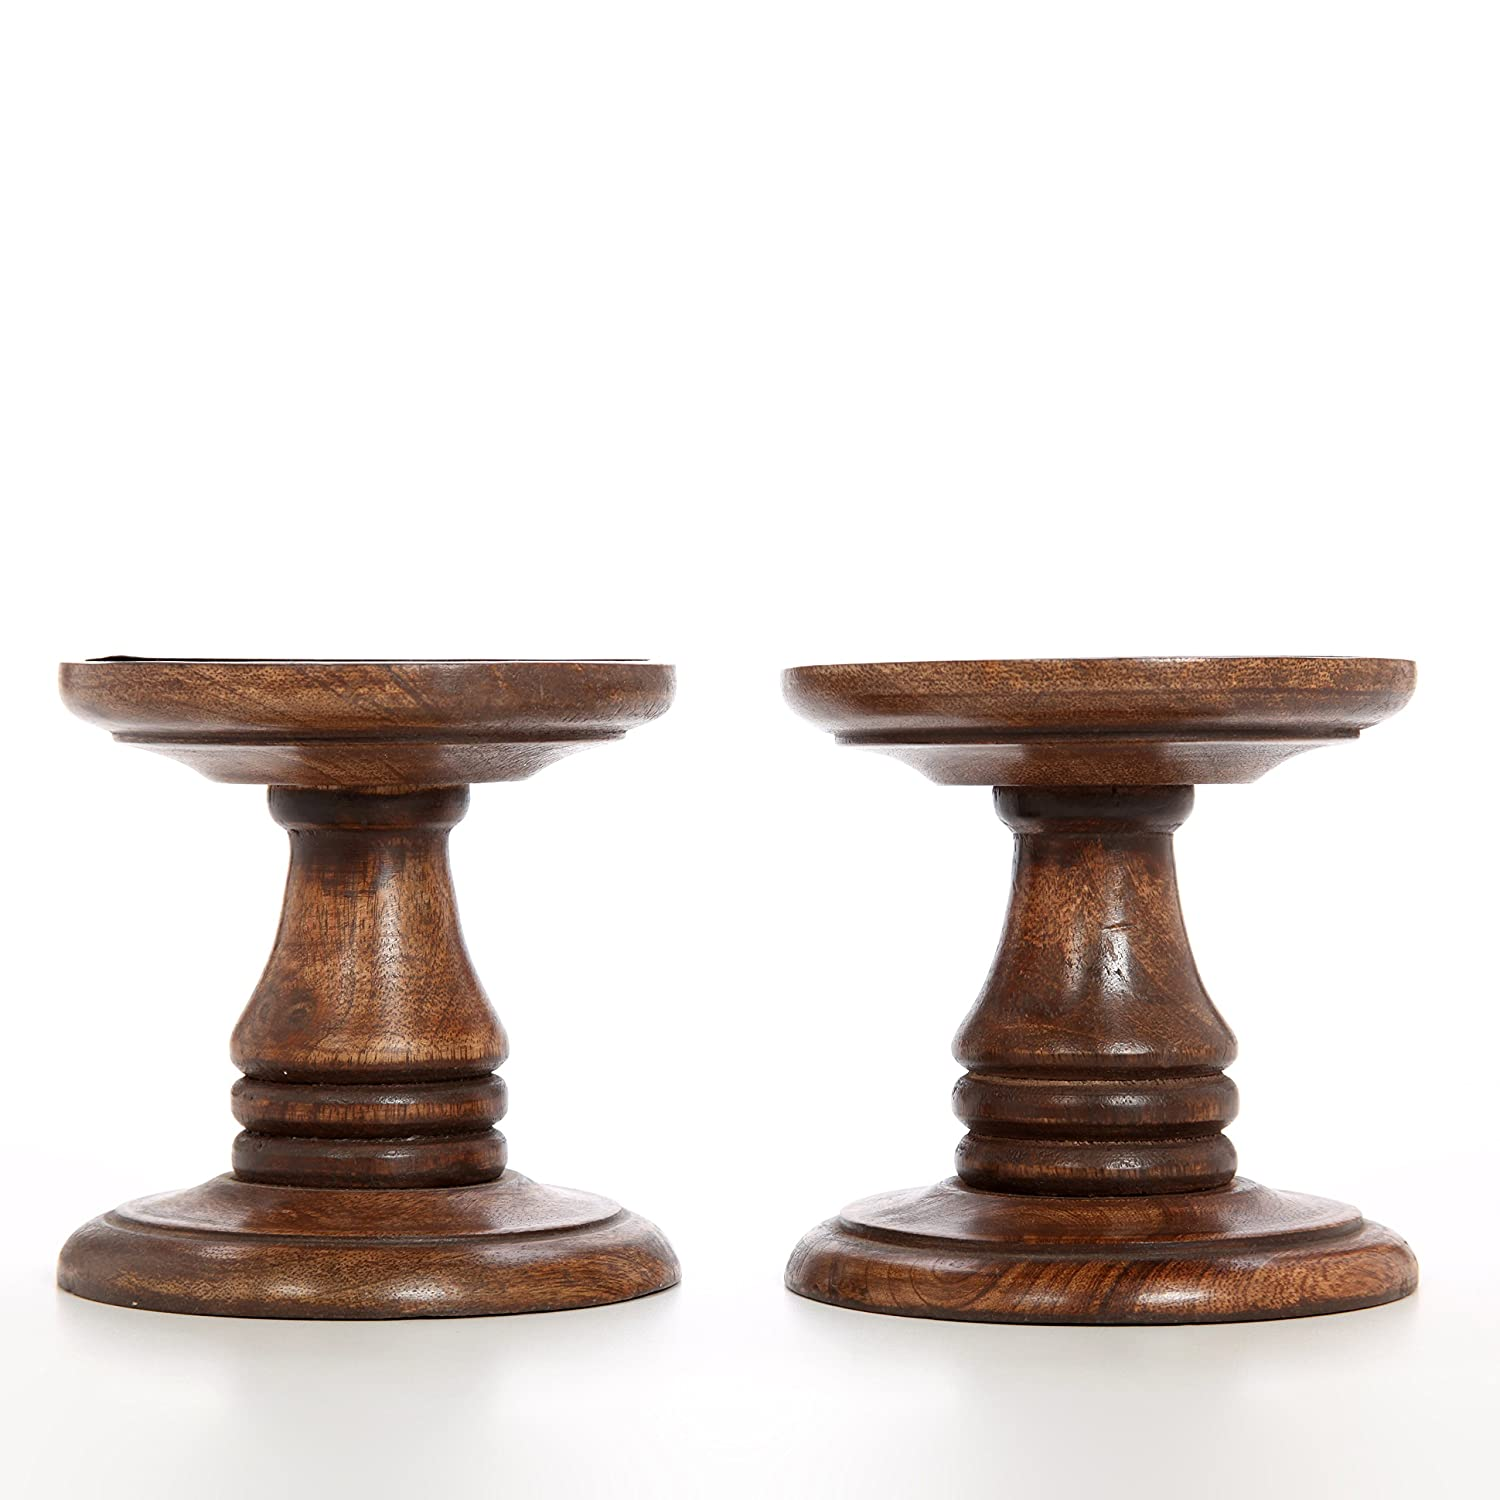 Meditation Votive // LED // Pillar Candle Gardens Bridal Spa Hosley Set of 2 Wood Pillar Candle Holders Ideal Gift for Weddings 5 High Party Reiki